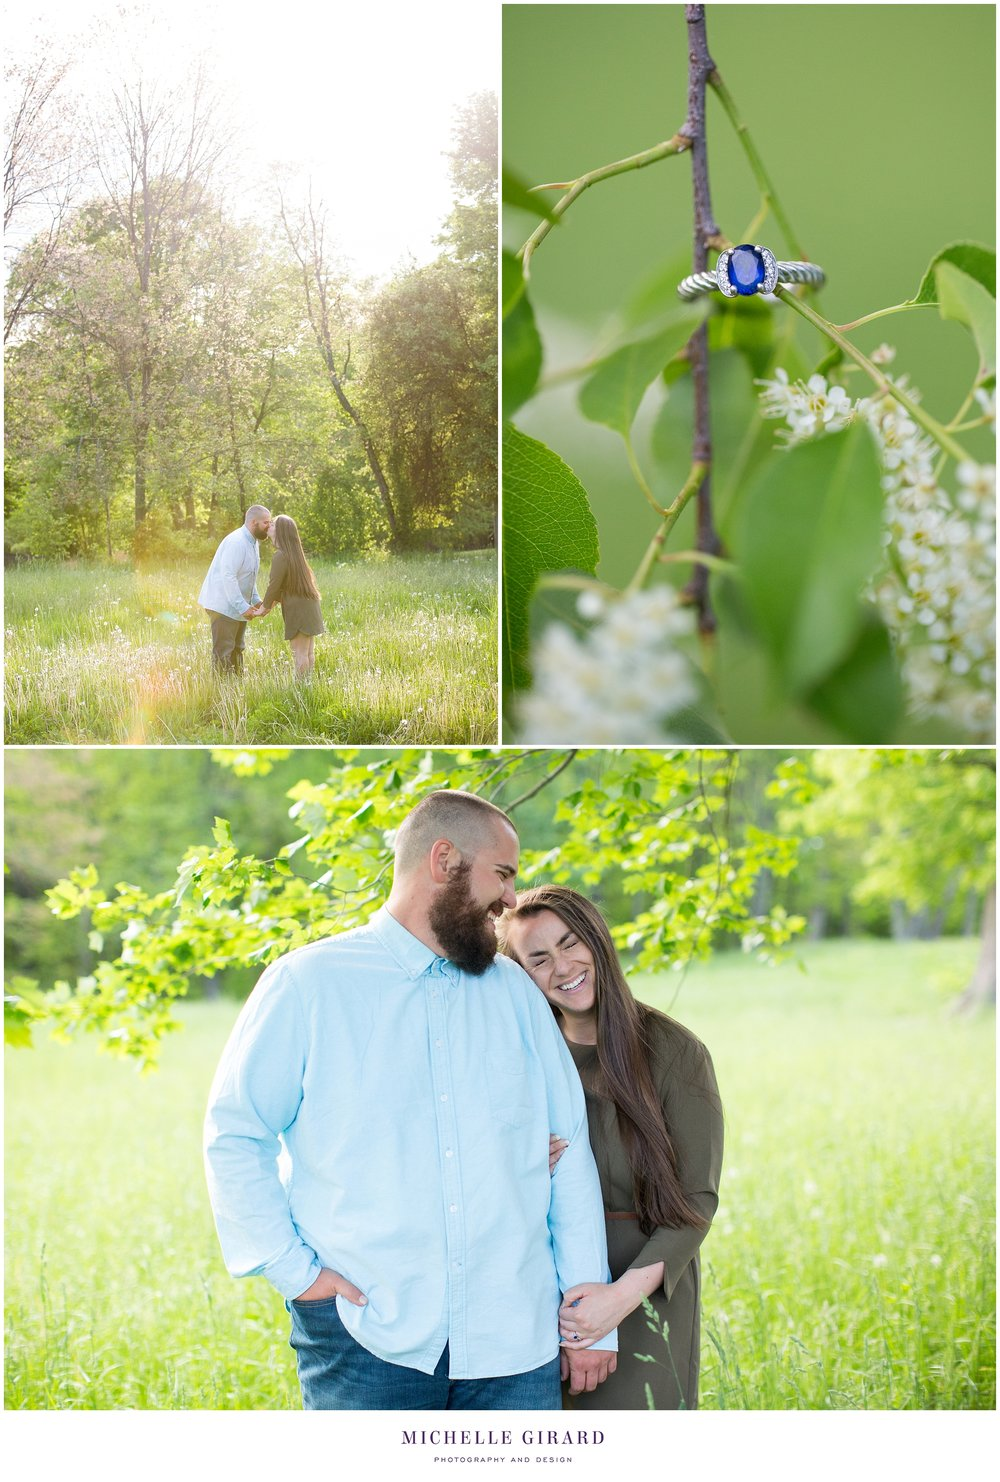 BackyardCountryEngagementSession_MichelleGirardPhotography06.jpg